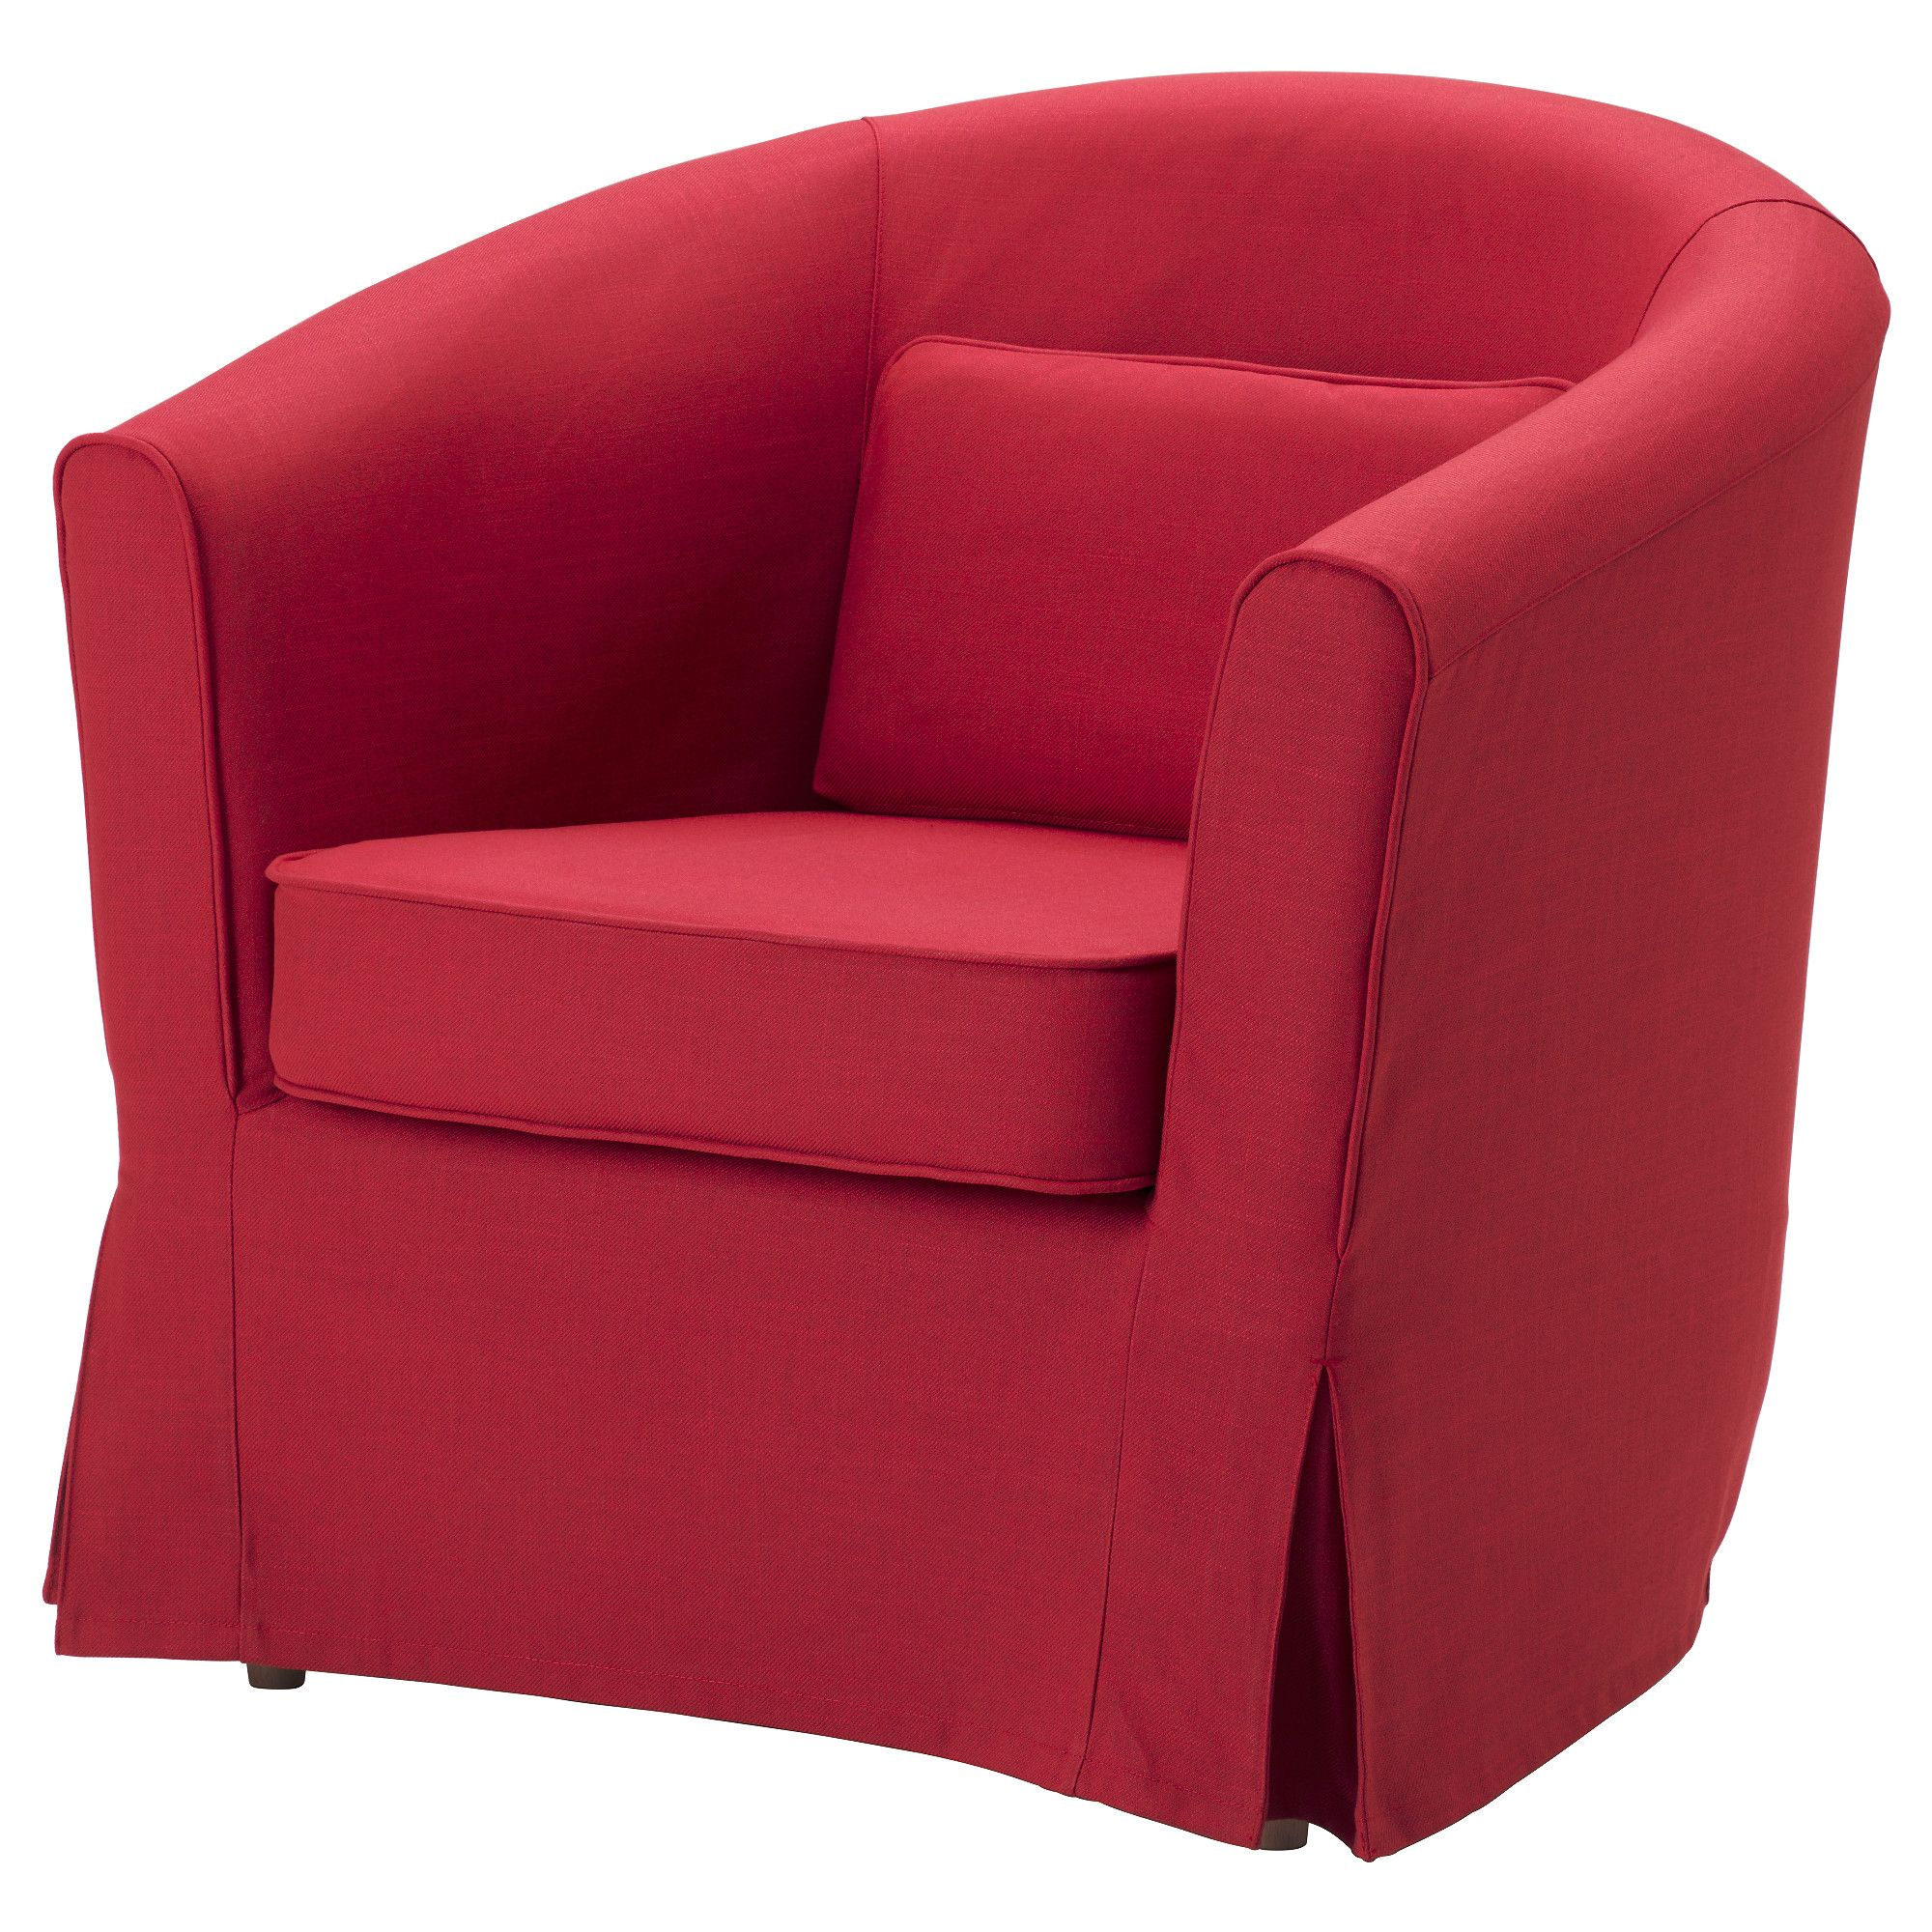 ikea accent chair covers topcon and stand tullsta poly8rona if this is a dark red then would be great piece in my entrance way